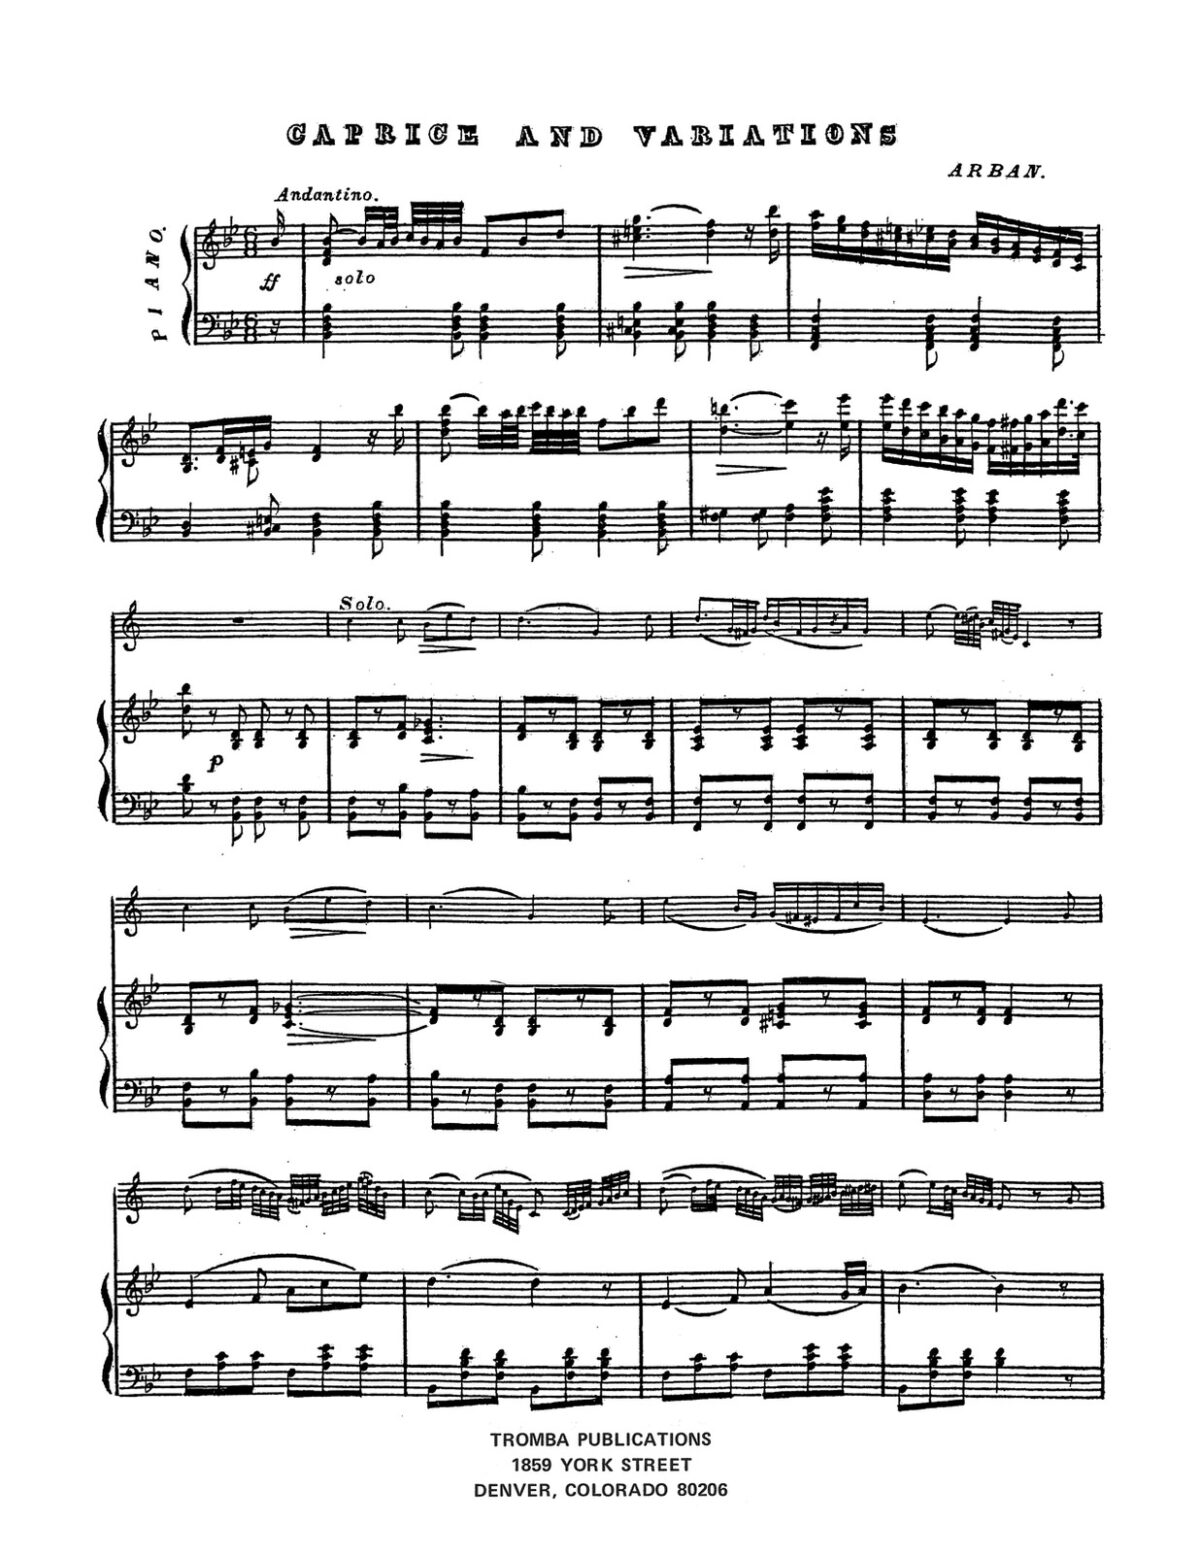 Arban, Caprice and Variations-p05